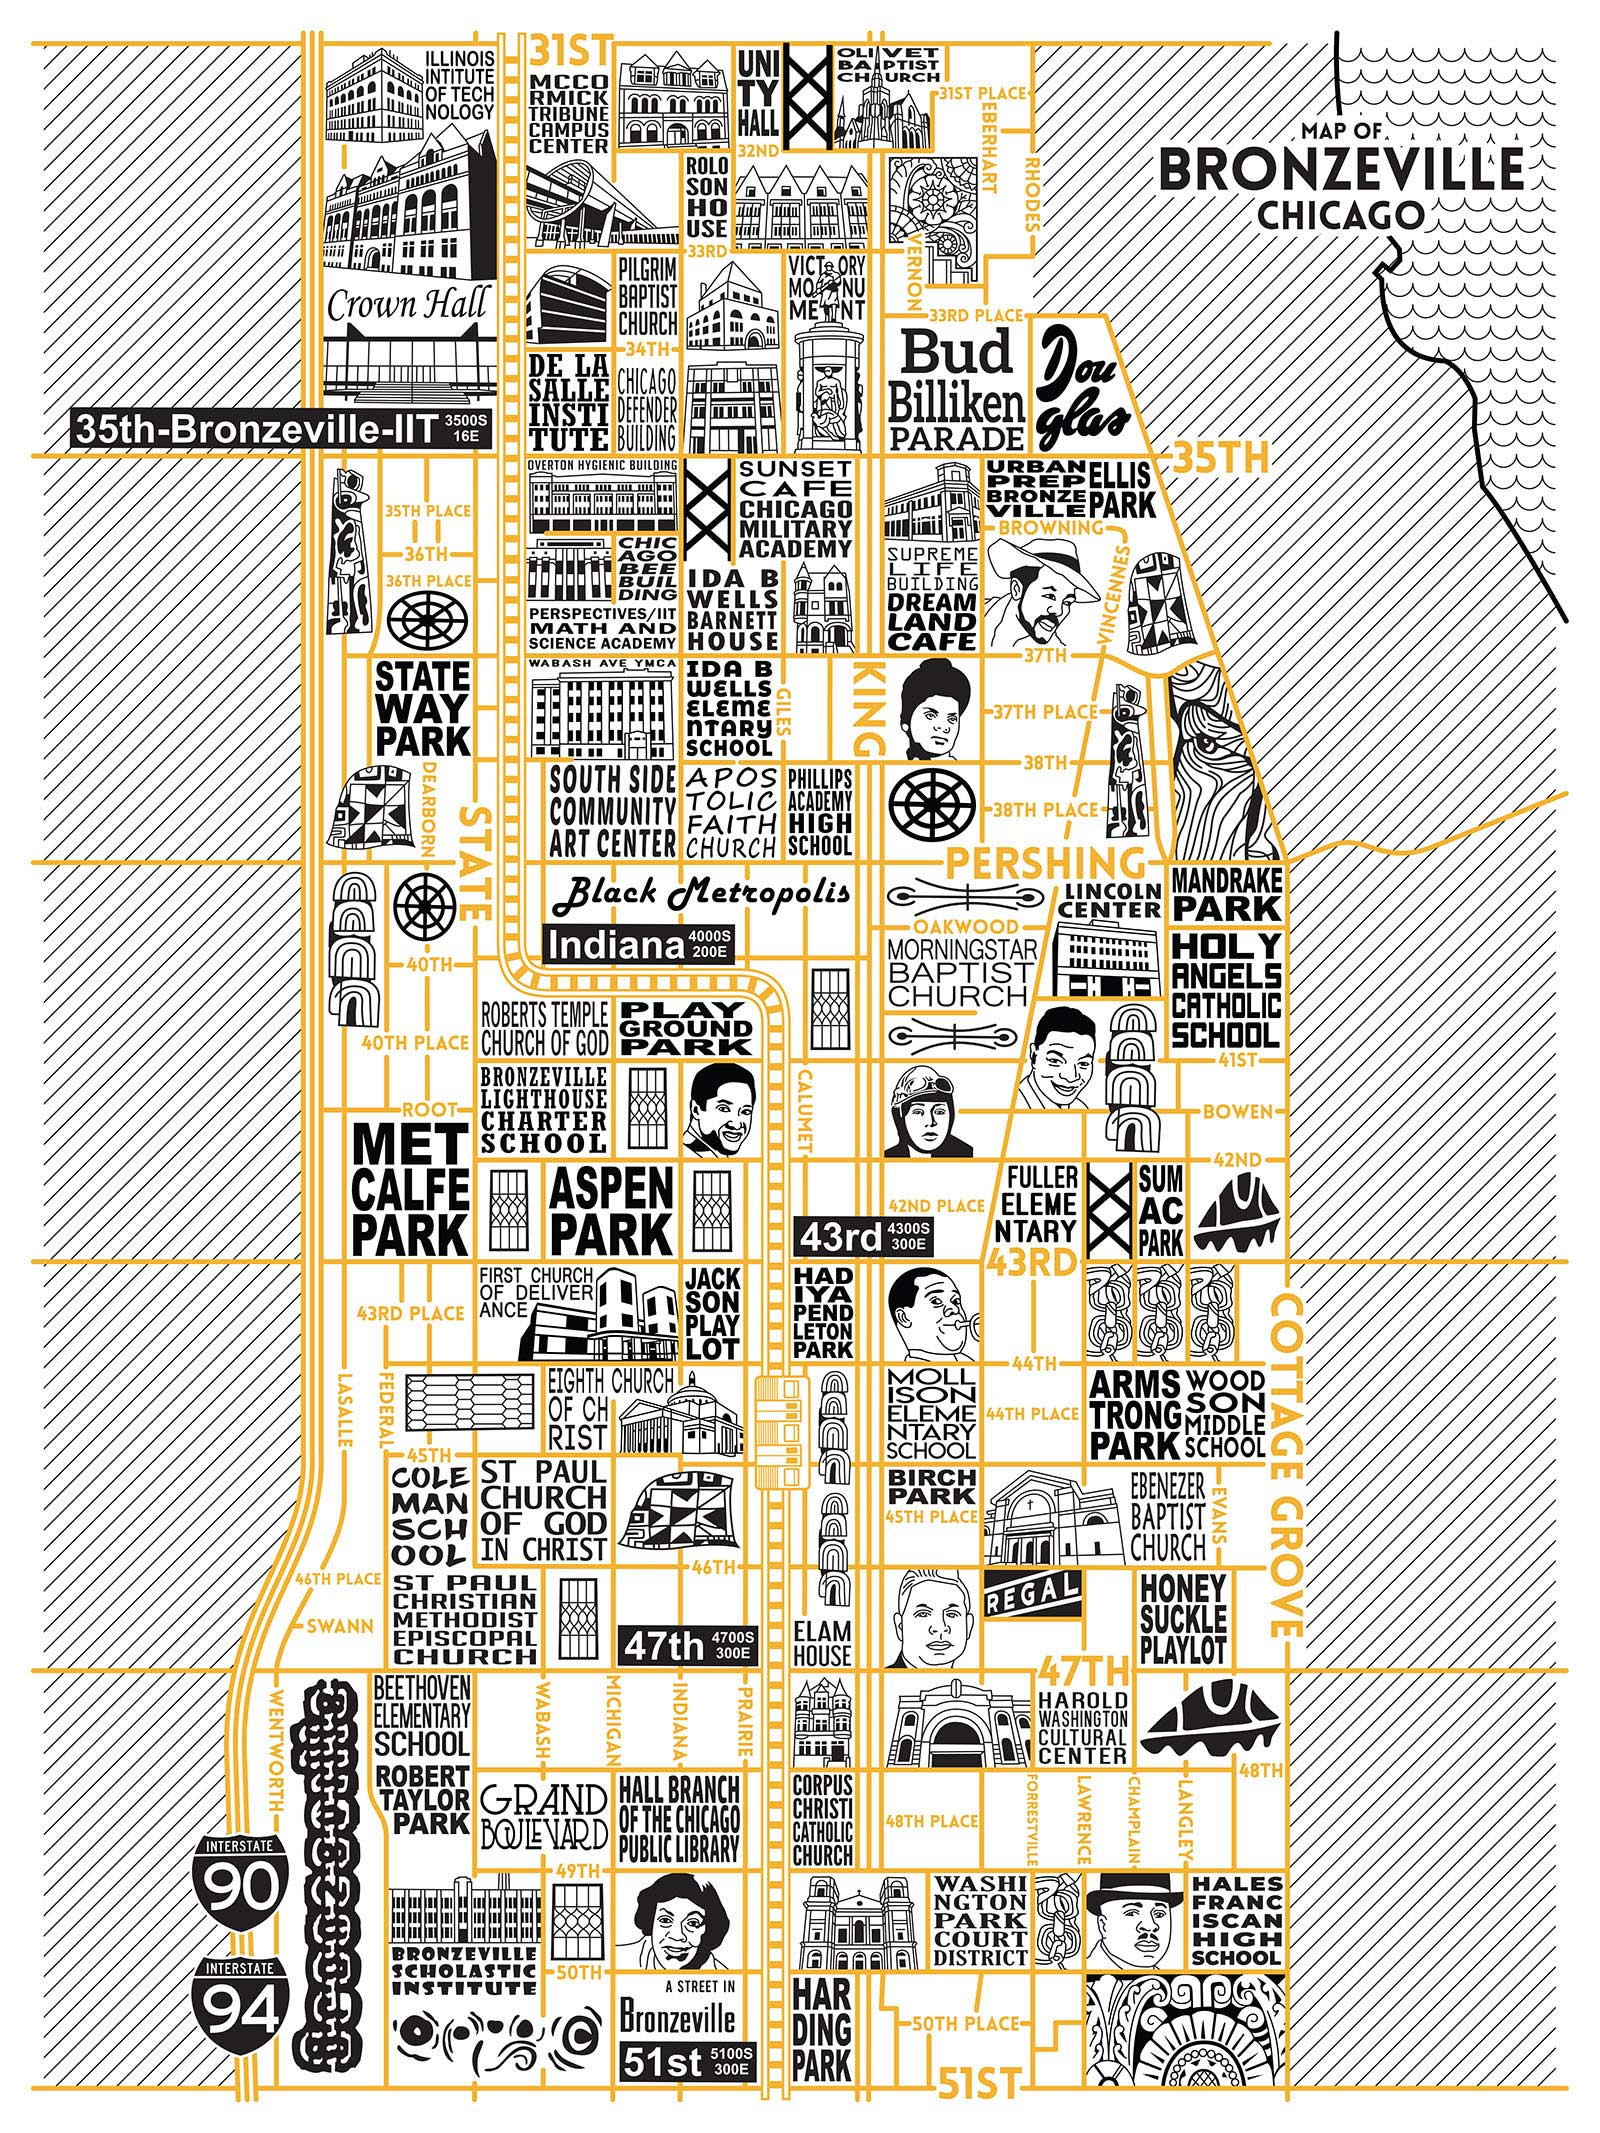 Bronzeville Map -  Purchase a map here